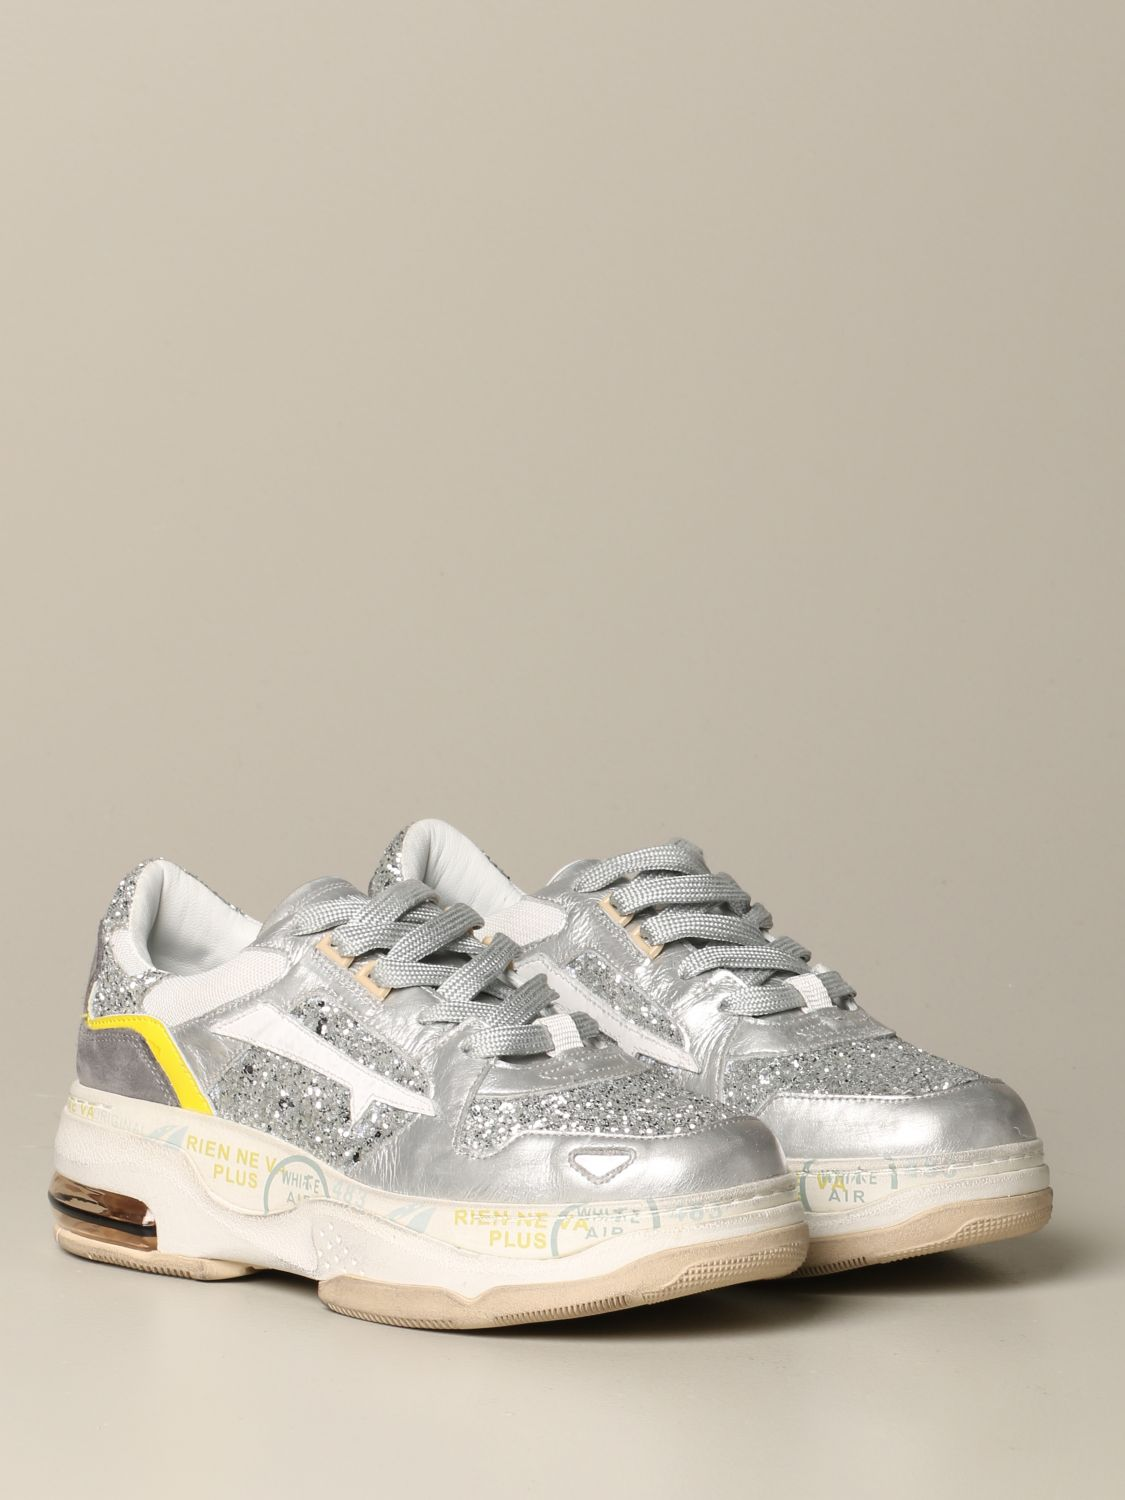 Premiata Drake sizey sneakers in leather and glitter silver 2